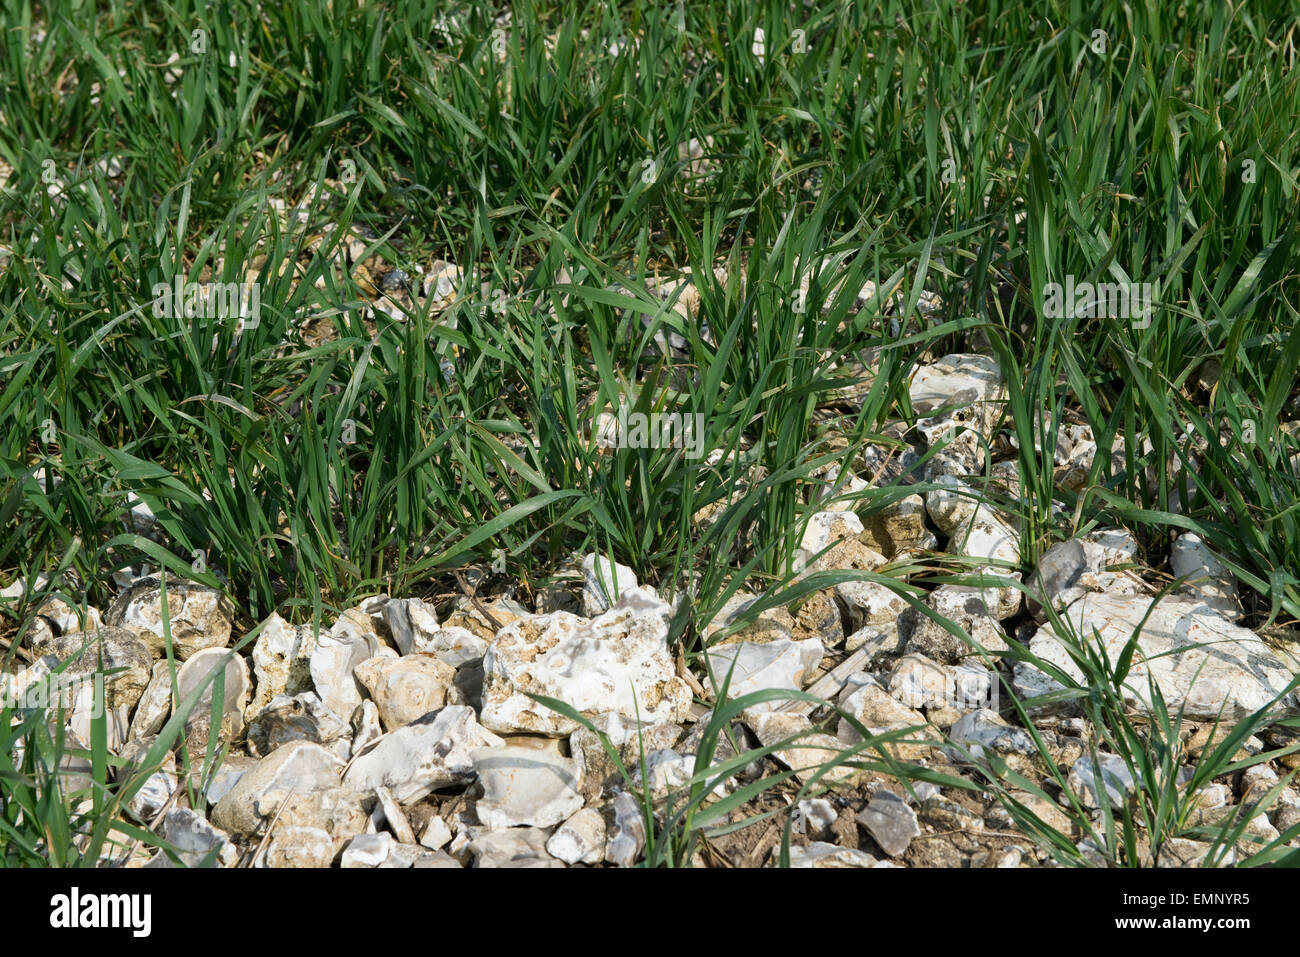 A young wheat crop groiwing in very stony, flint ground overlying chalk, Berkshire, UK , April - Stock Image